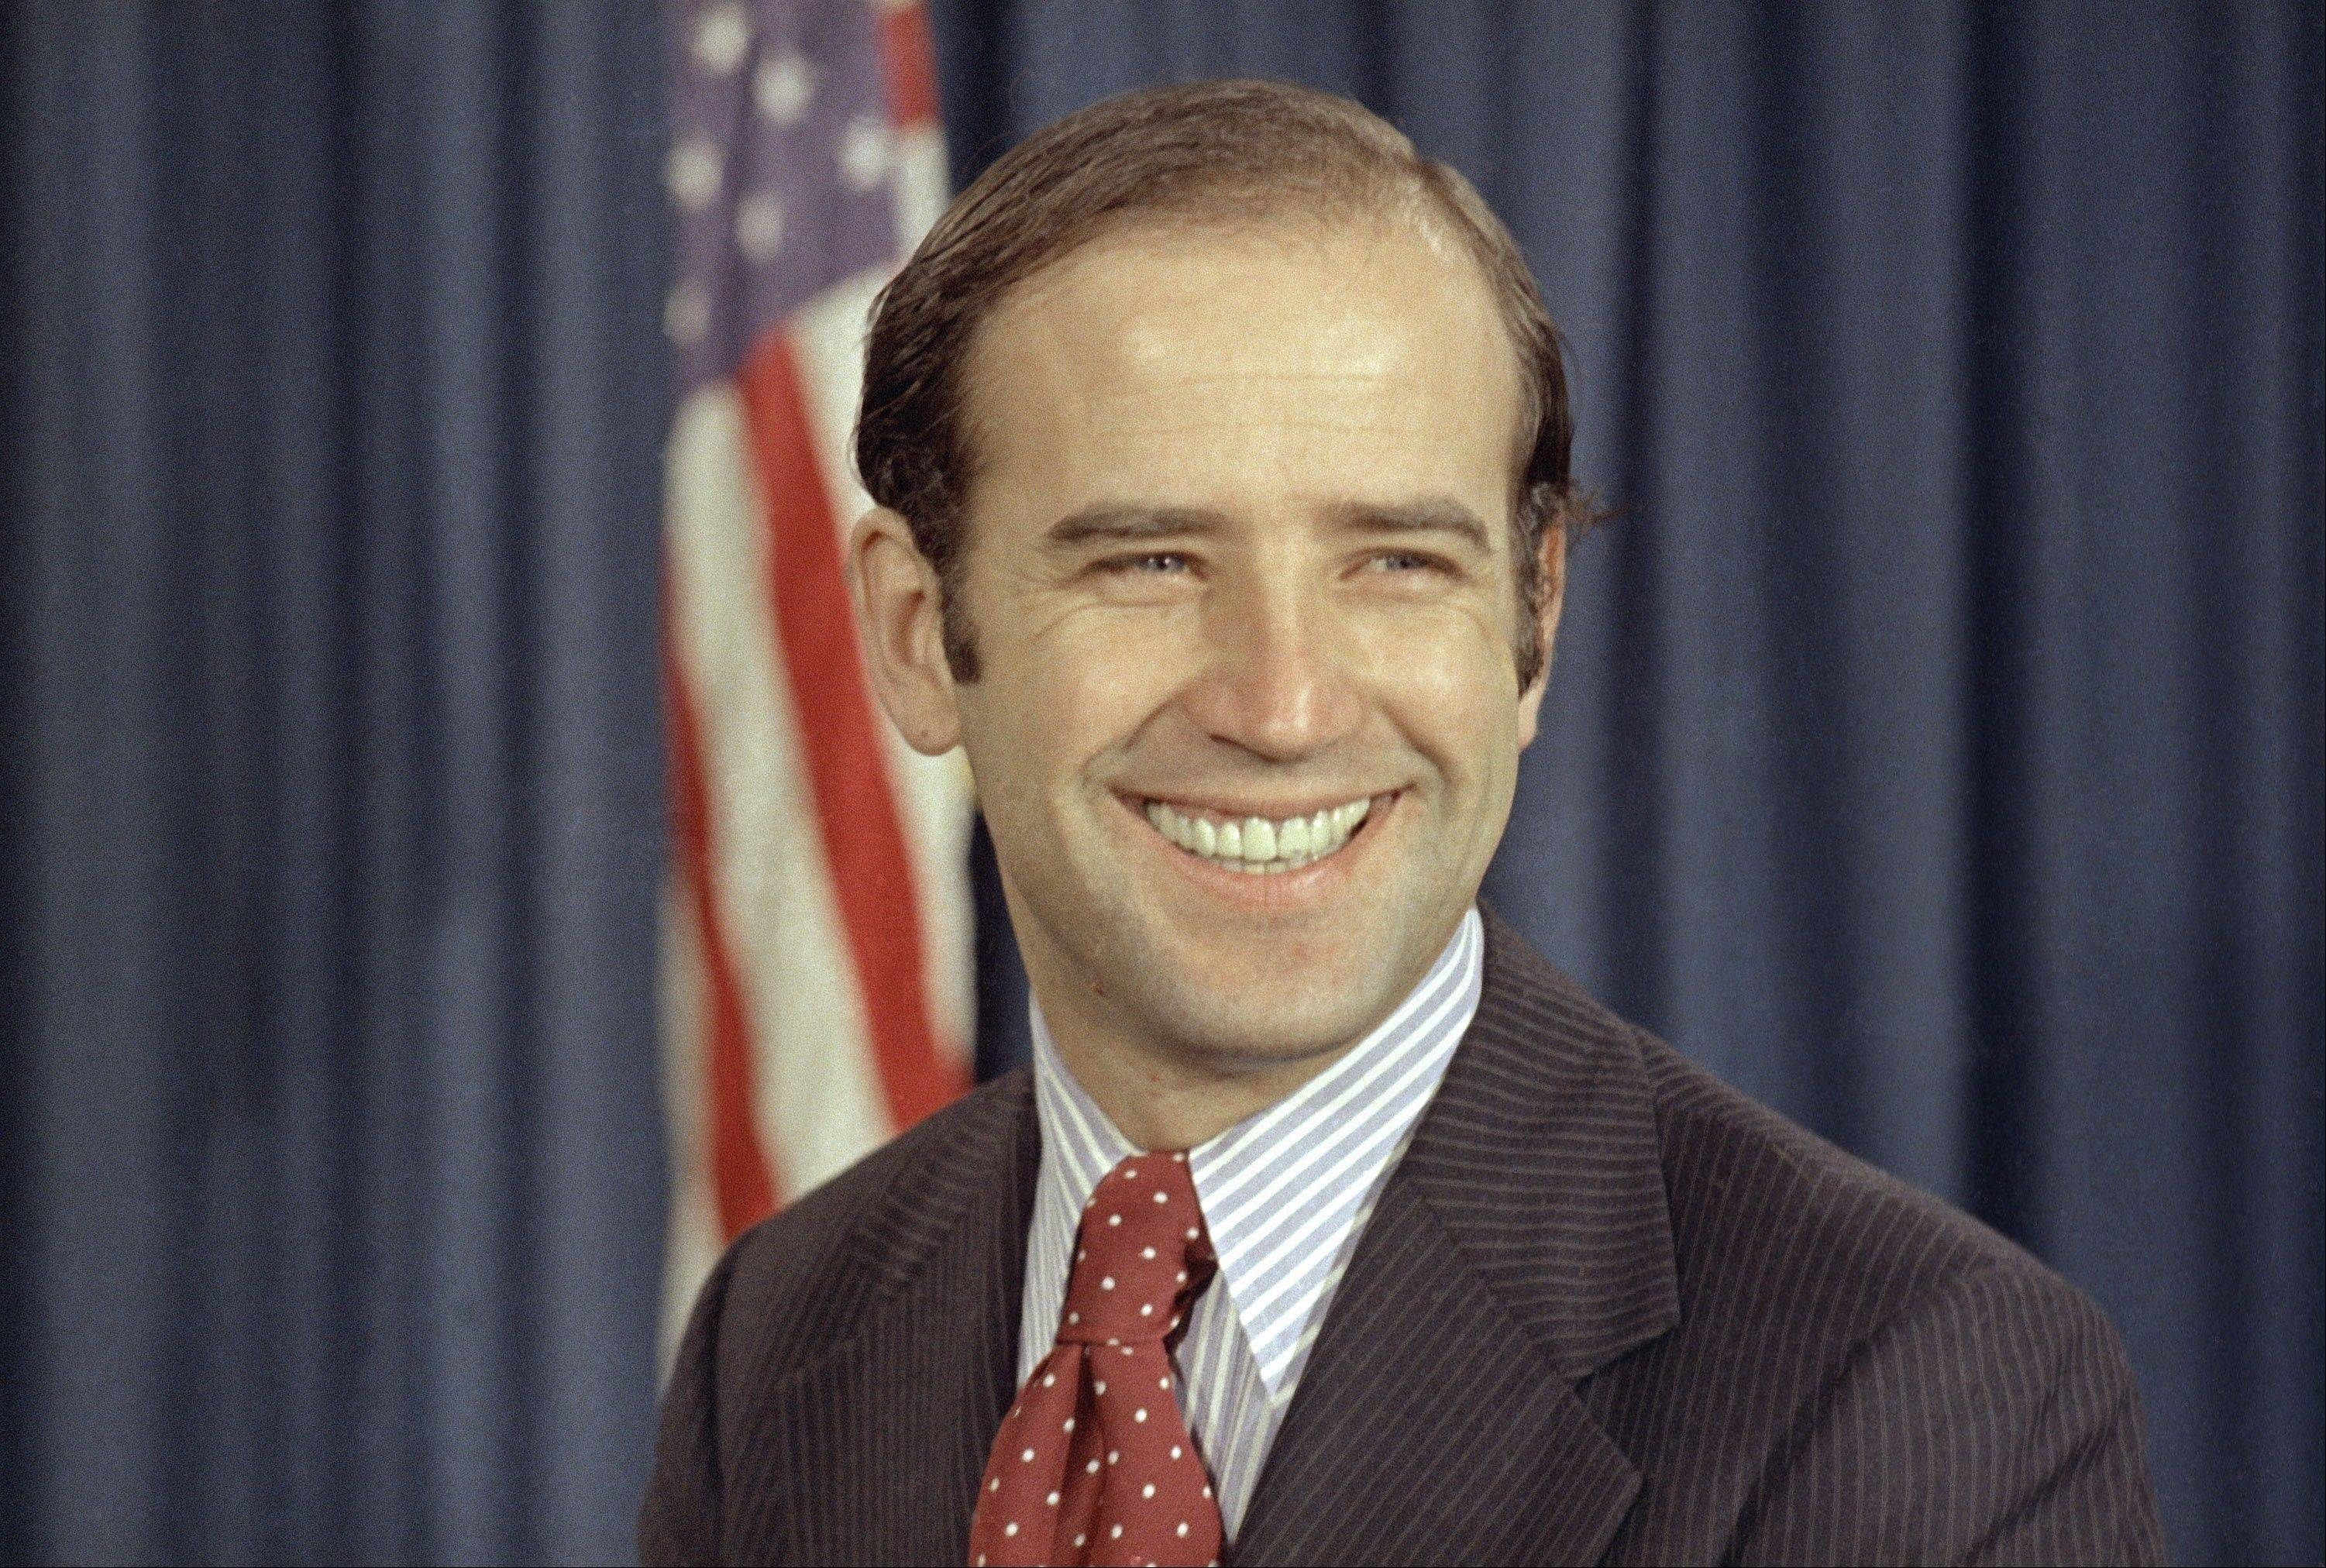 In this Dec. 13, 1972 file photo, the newly-elected Democratic senator from Delaware, Joe Biden, is shown on Capitol Hill in Washington. In May, after Joe Biden tripped up his boss by voicing support for same-sex marriage while the president remained on the fence, there was speculation about whether the remarks were spontaneous or deliberate. But to those who know Biden, there was no doubt. He was just speaking his mind.